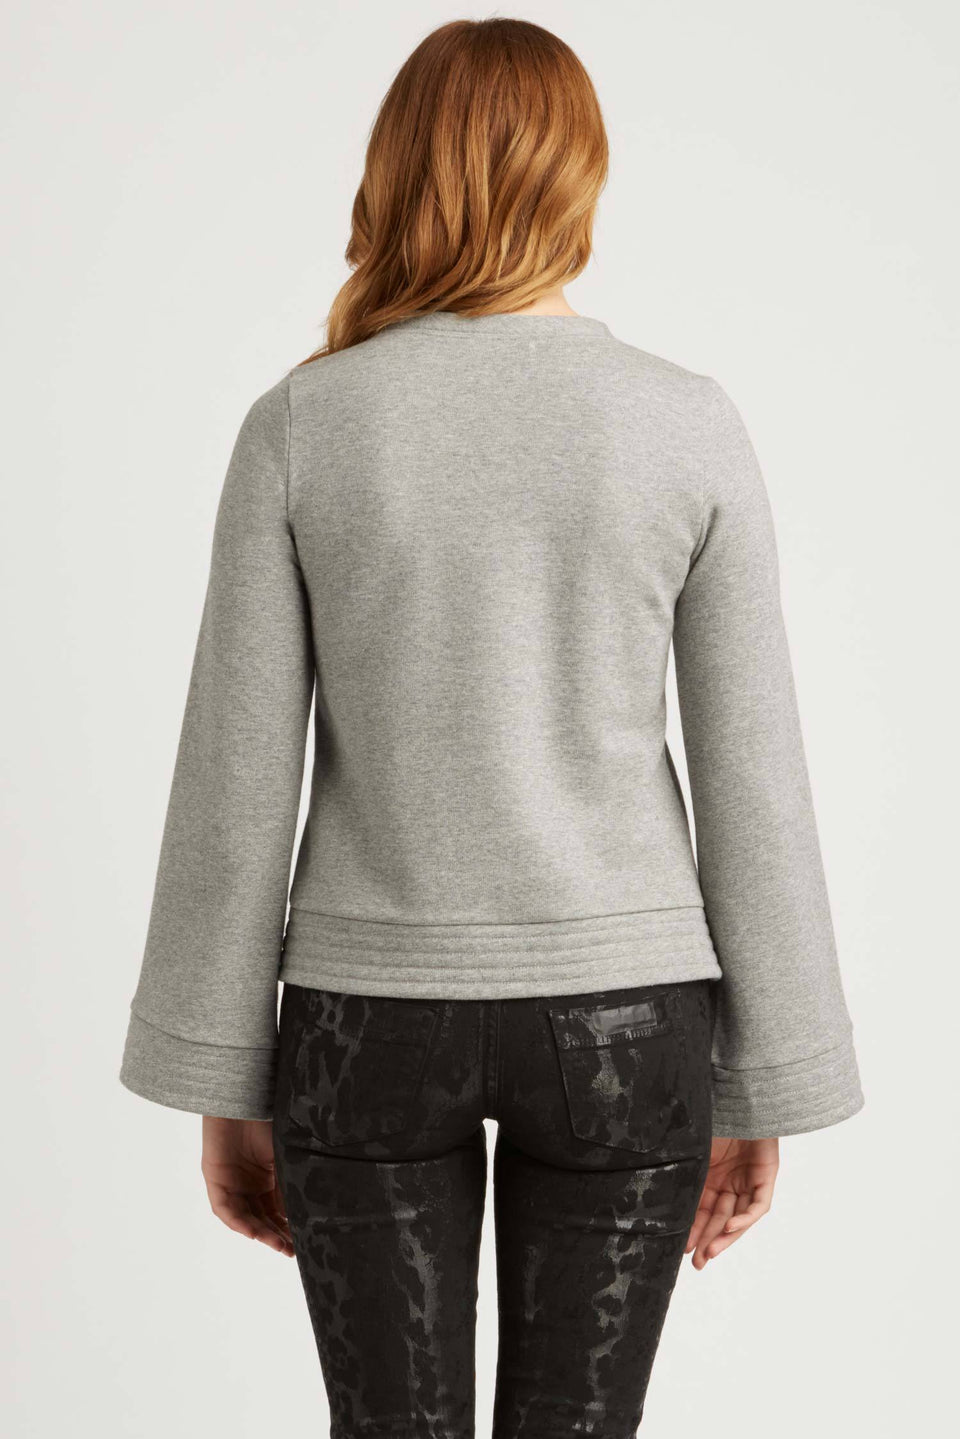 Bell Sleeve Pullover in Heather Grey